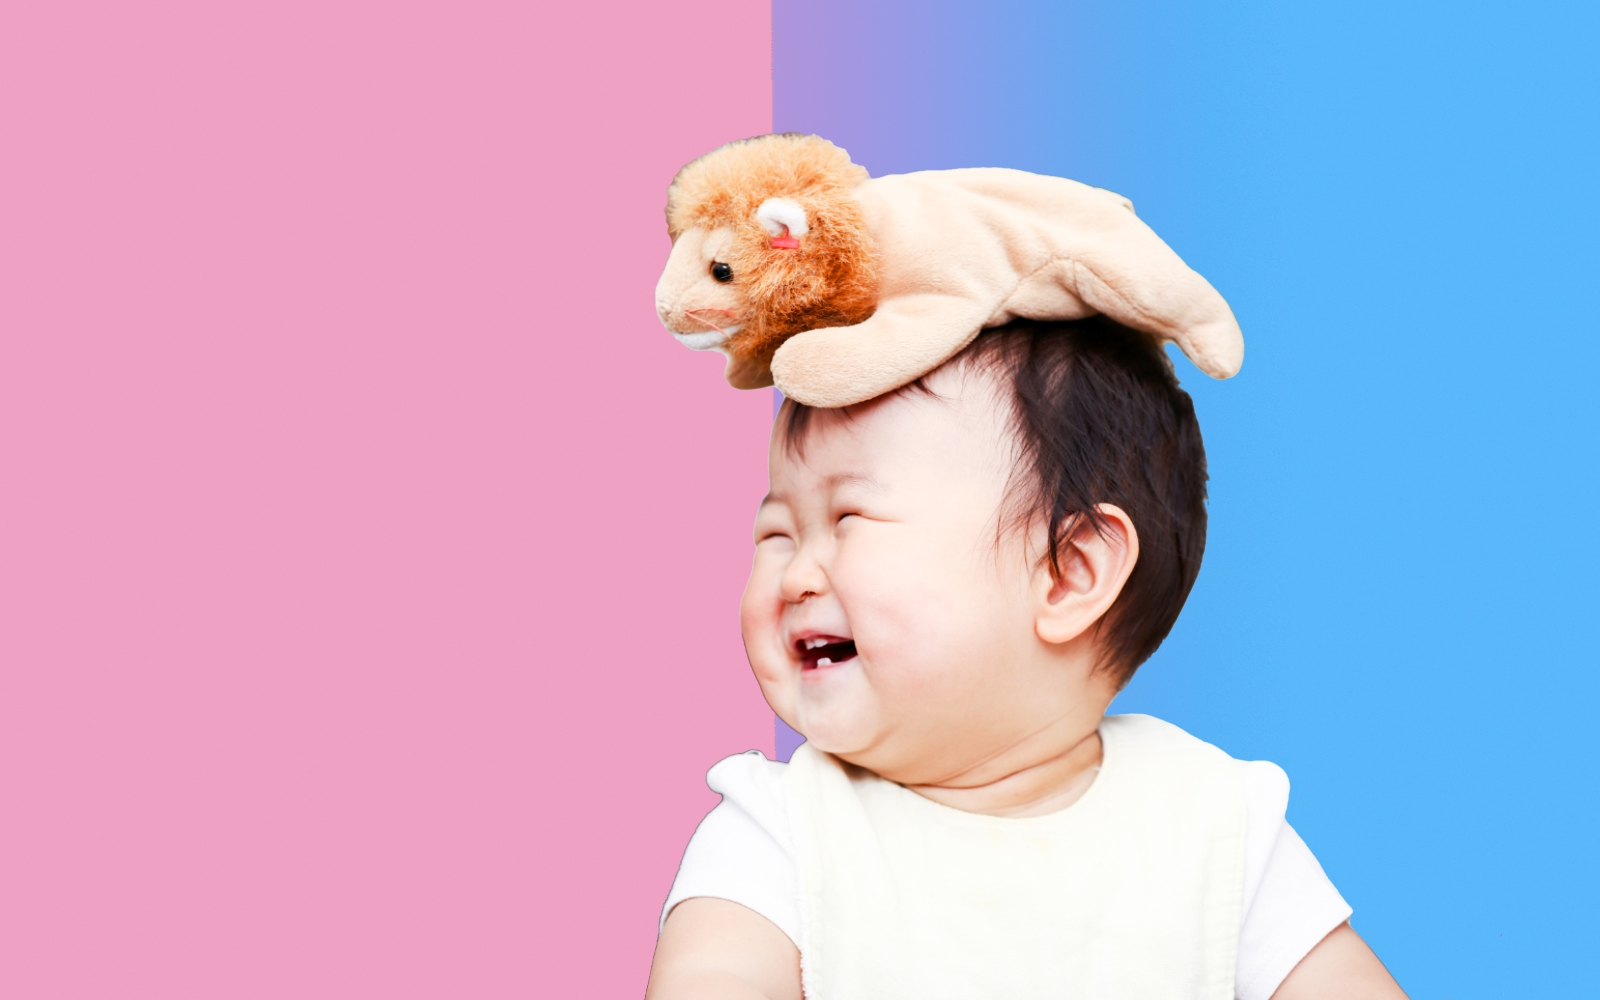 Baby Names That Work in Japanese and English - GaijinPot